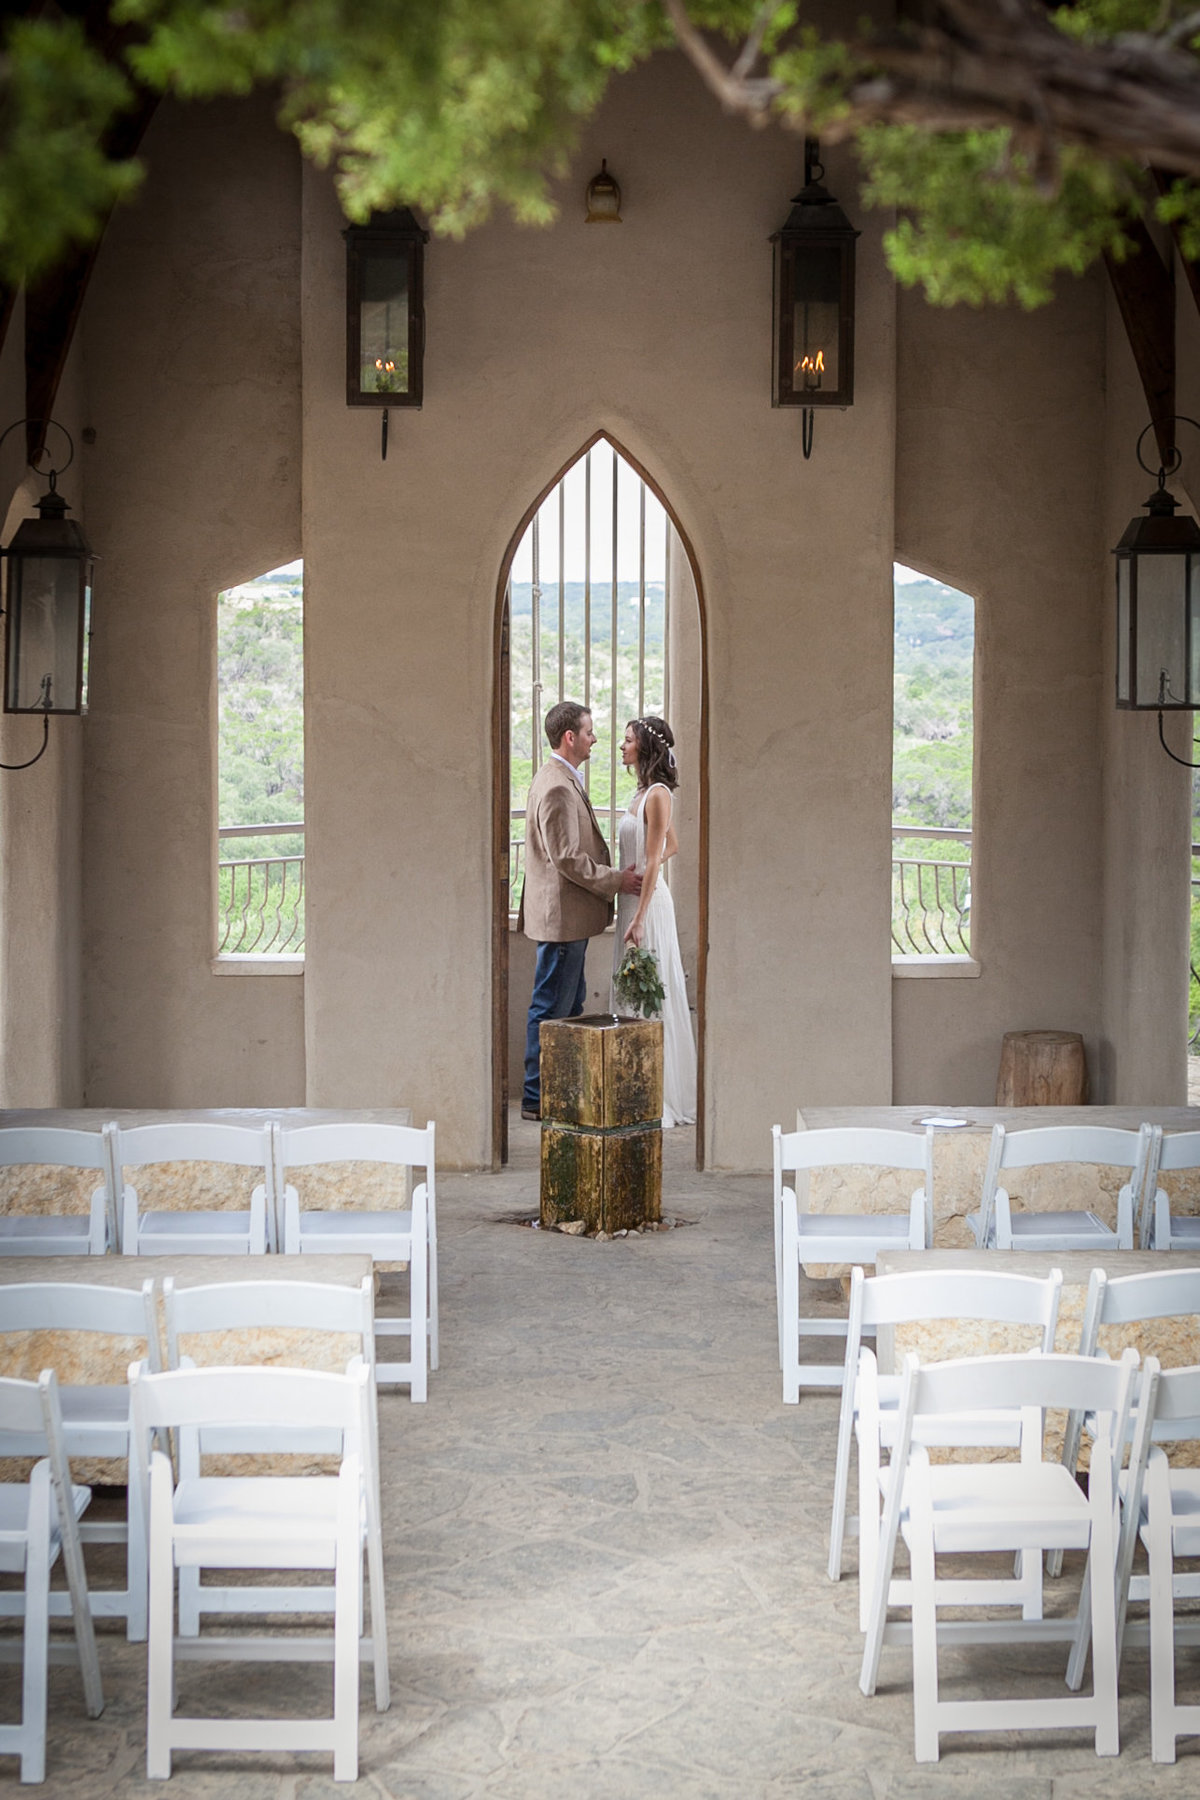 Chapel Dulcinea, Austin Family Photographer, Tiffany Chapman Photography bride and groom in the chapel photo